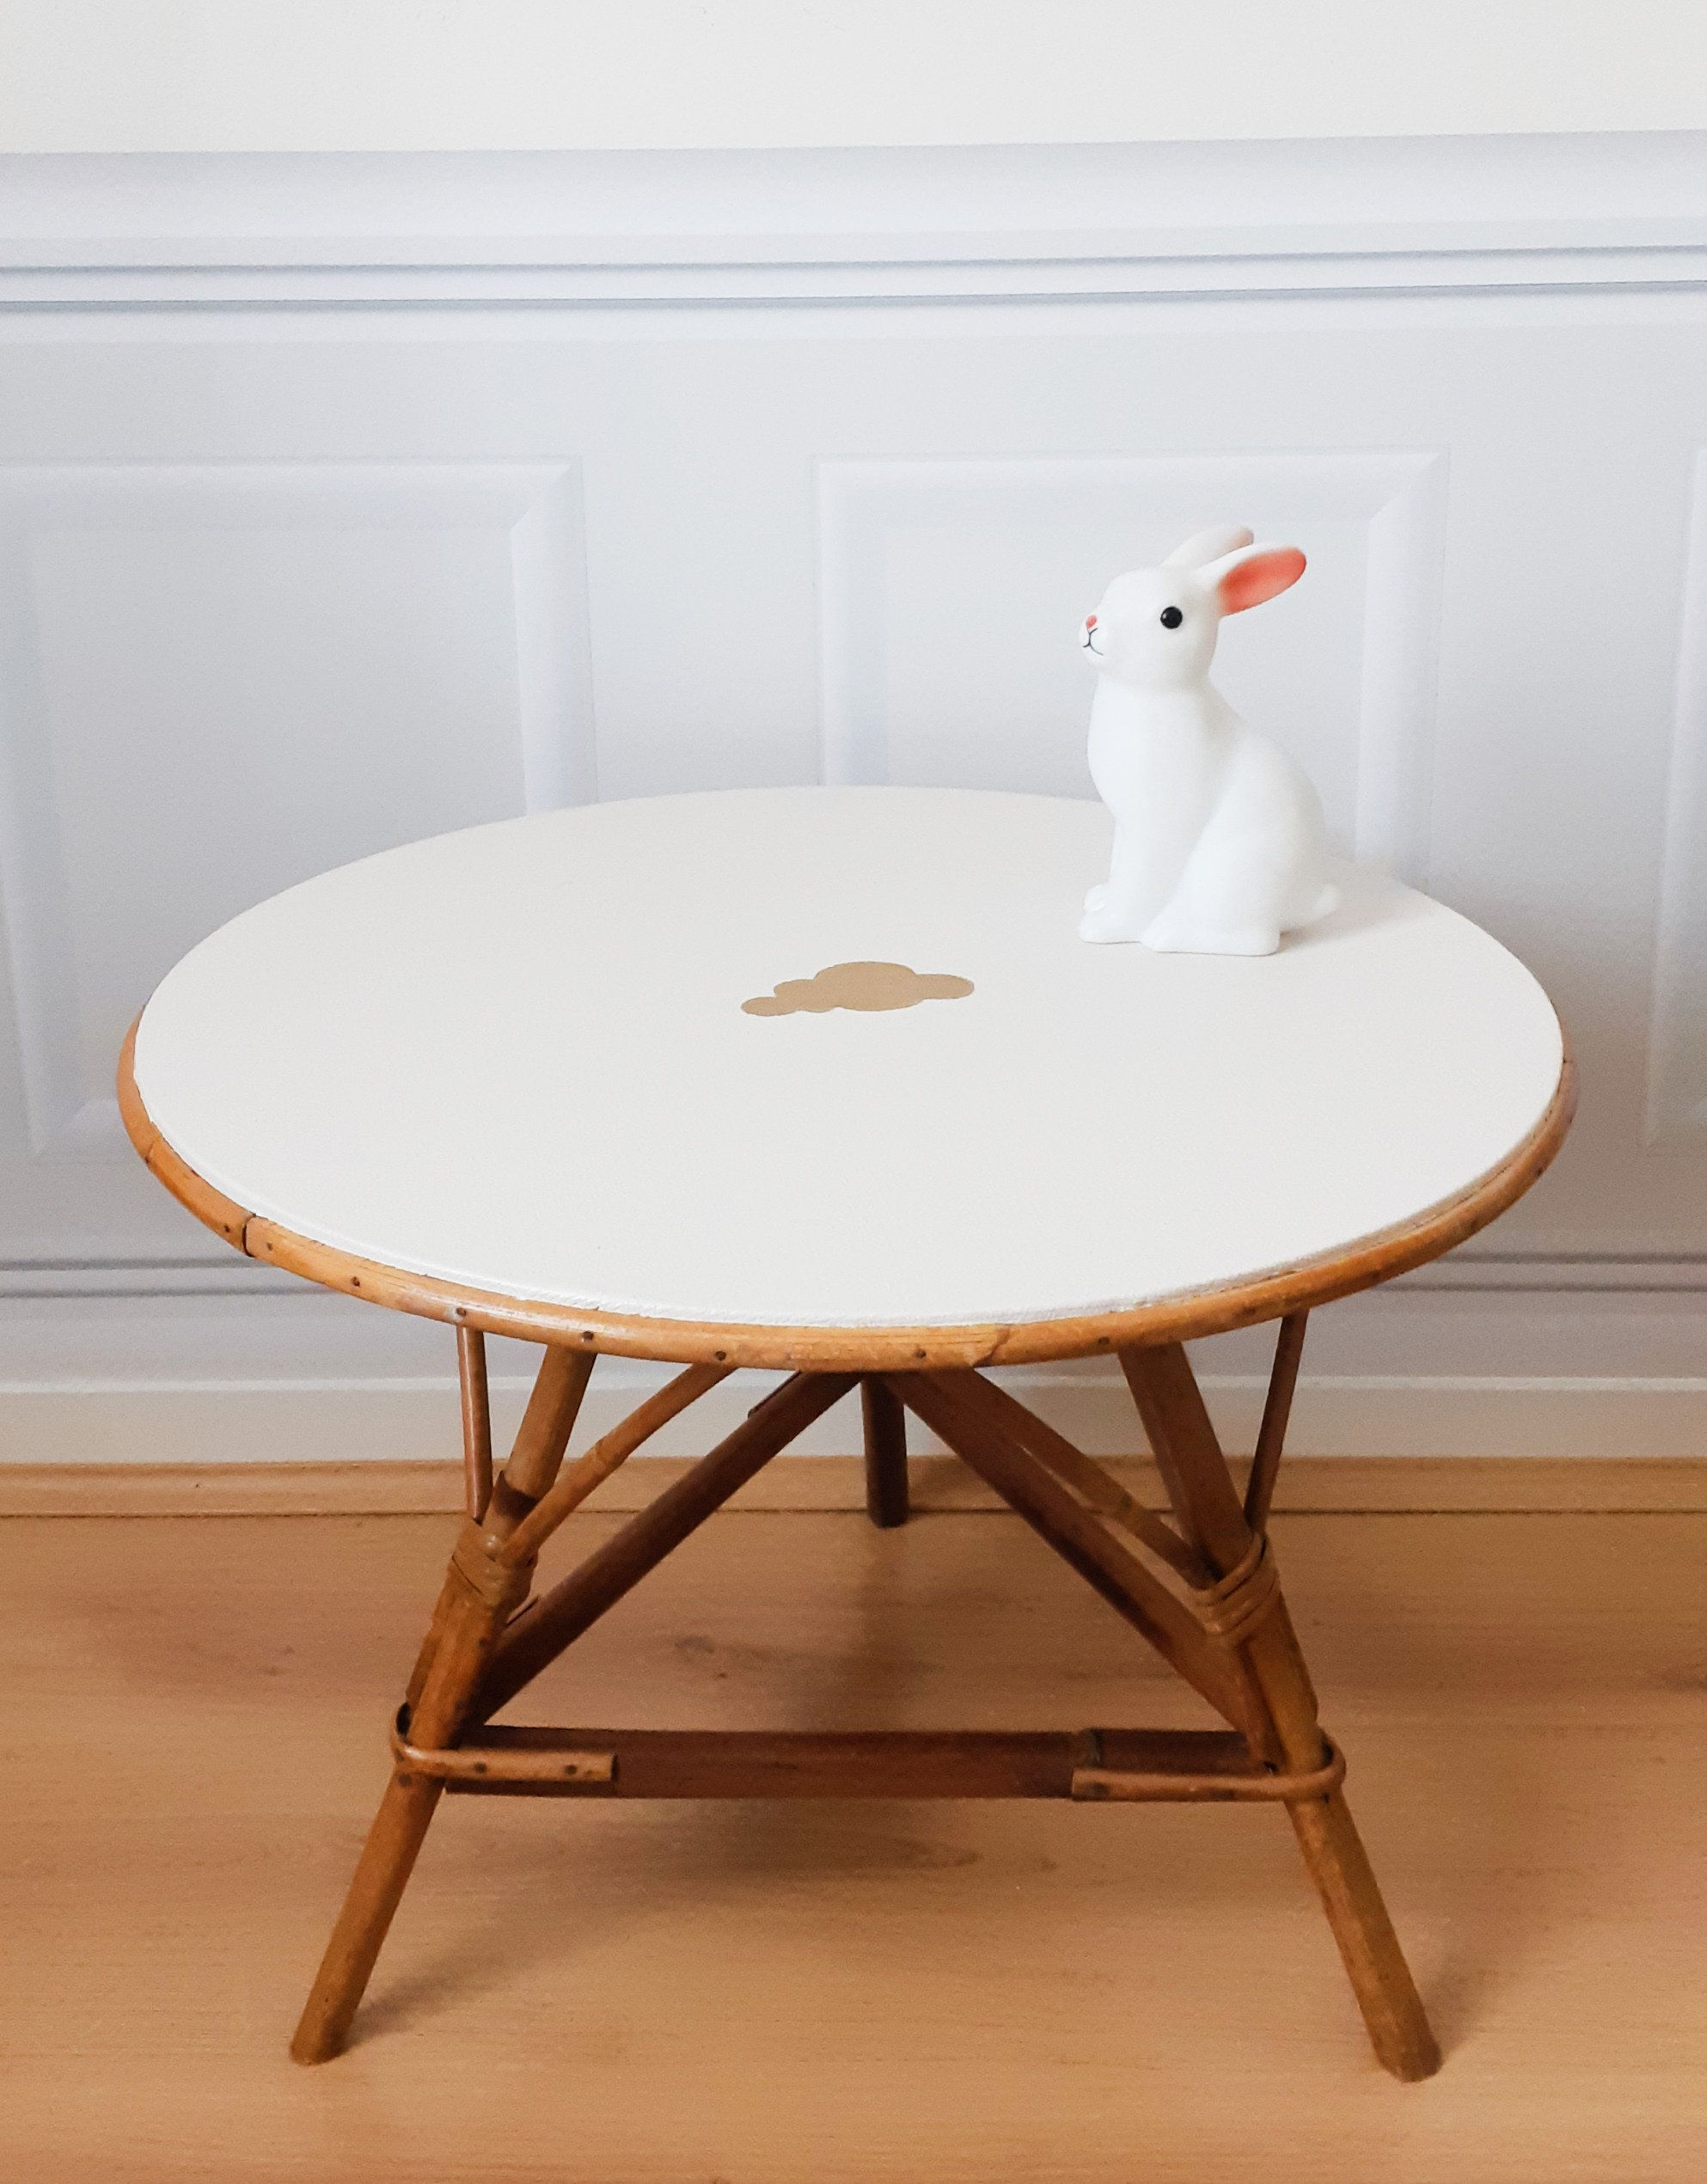 Table Ronde En Osier Rotin Bambou Rose Pastel Deco Nuage Or Etsy Home Decor Items Coffee Table 21st Century Homes